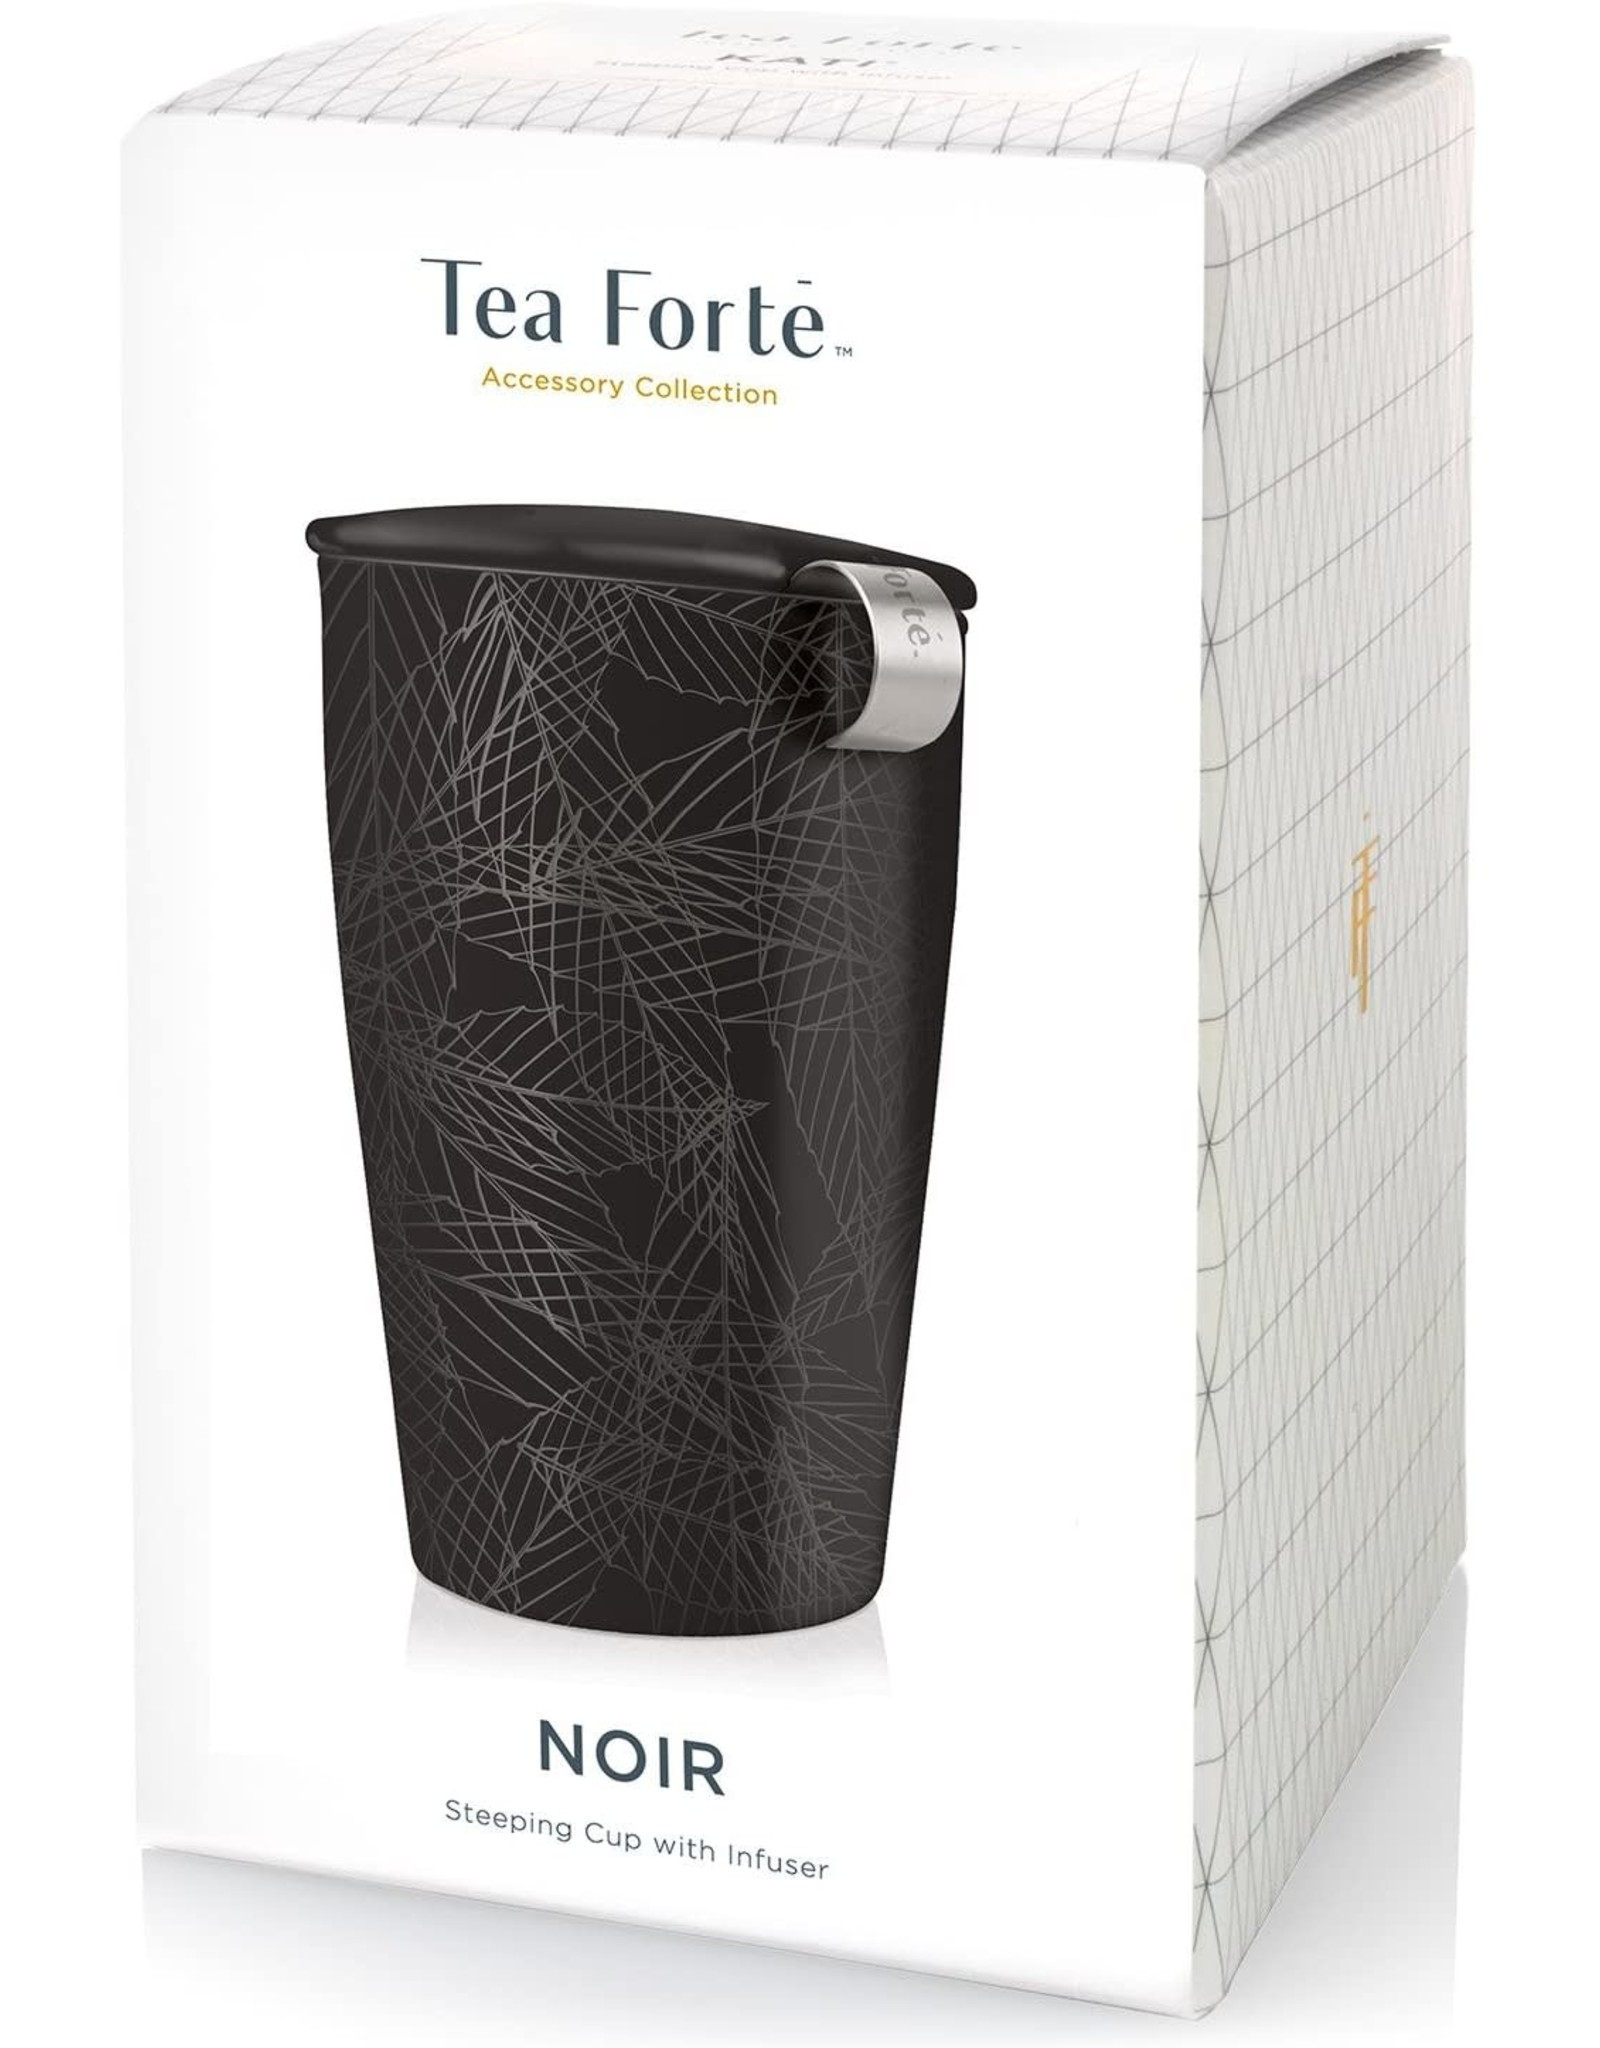 Tea Forte Steeping Cup with Infuser